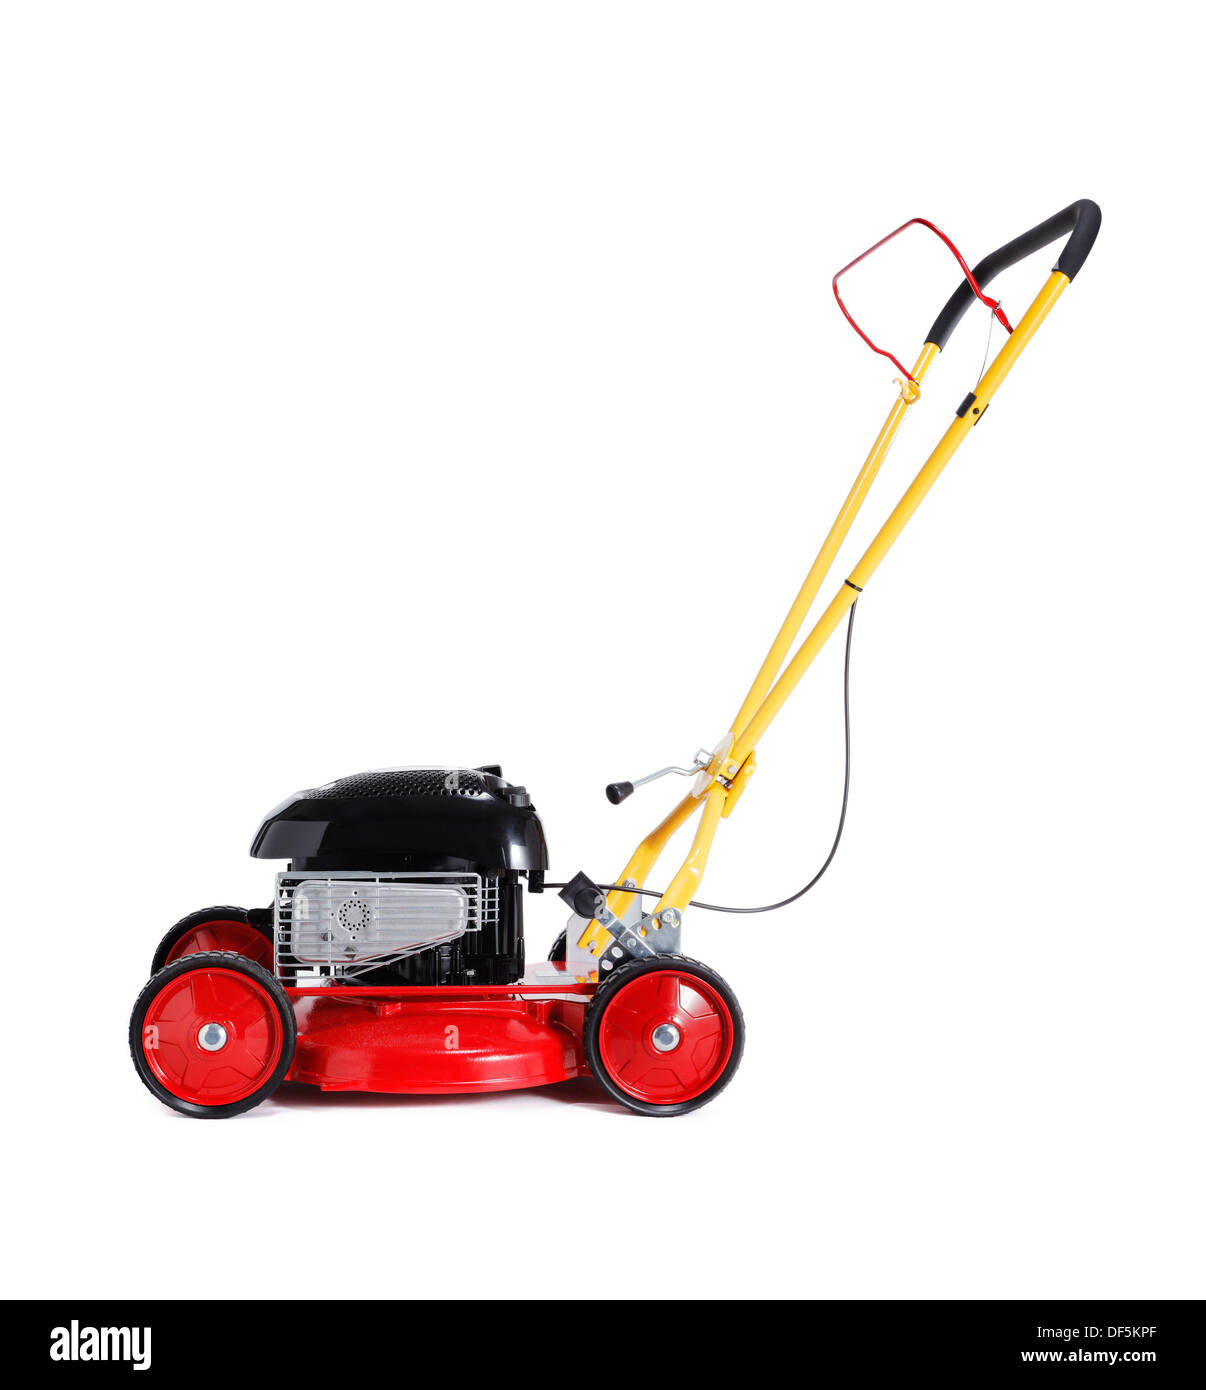 Red new retro-styled lawn mower isolated on white with natural shadow. - Stock Image